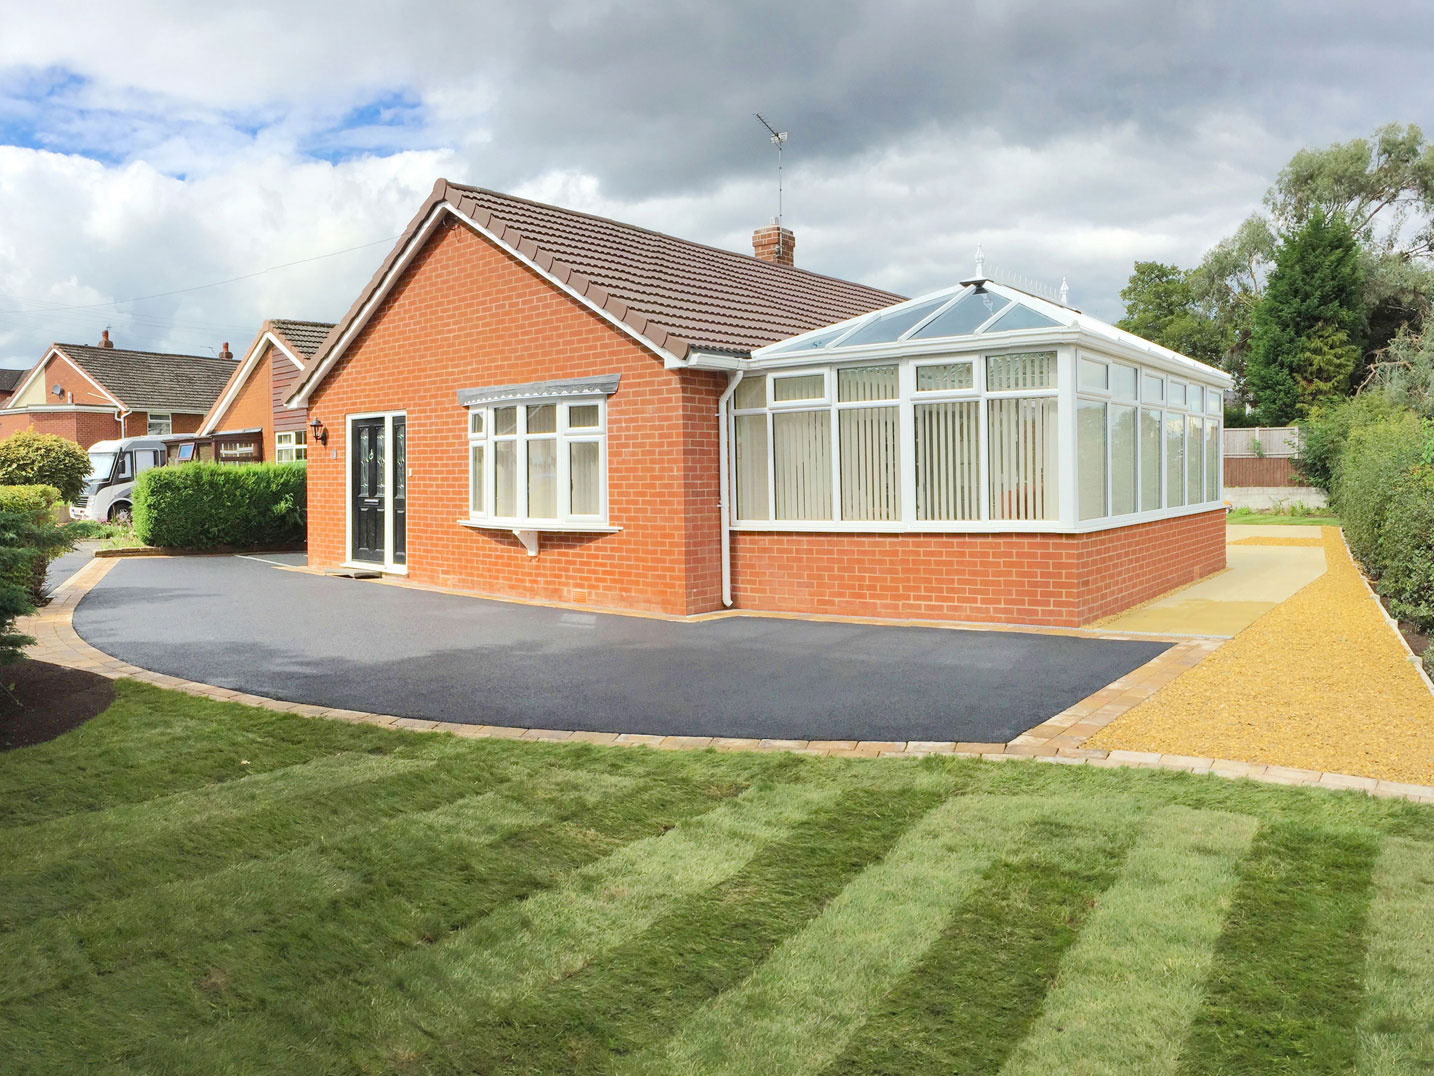 Tarmac driveways in Staffordshire